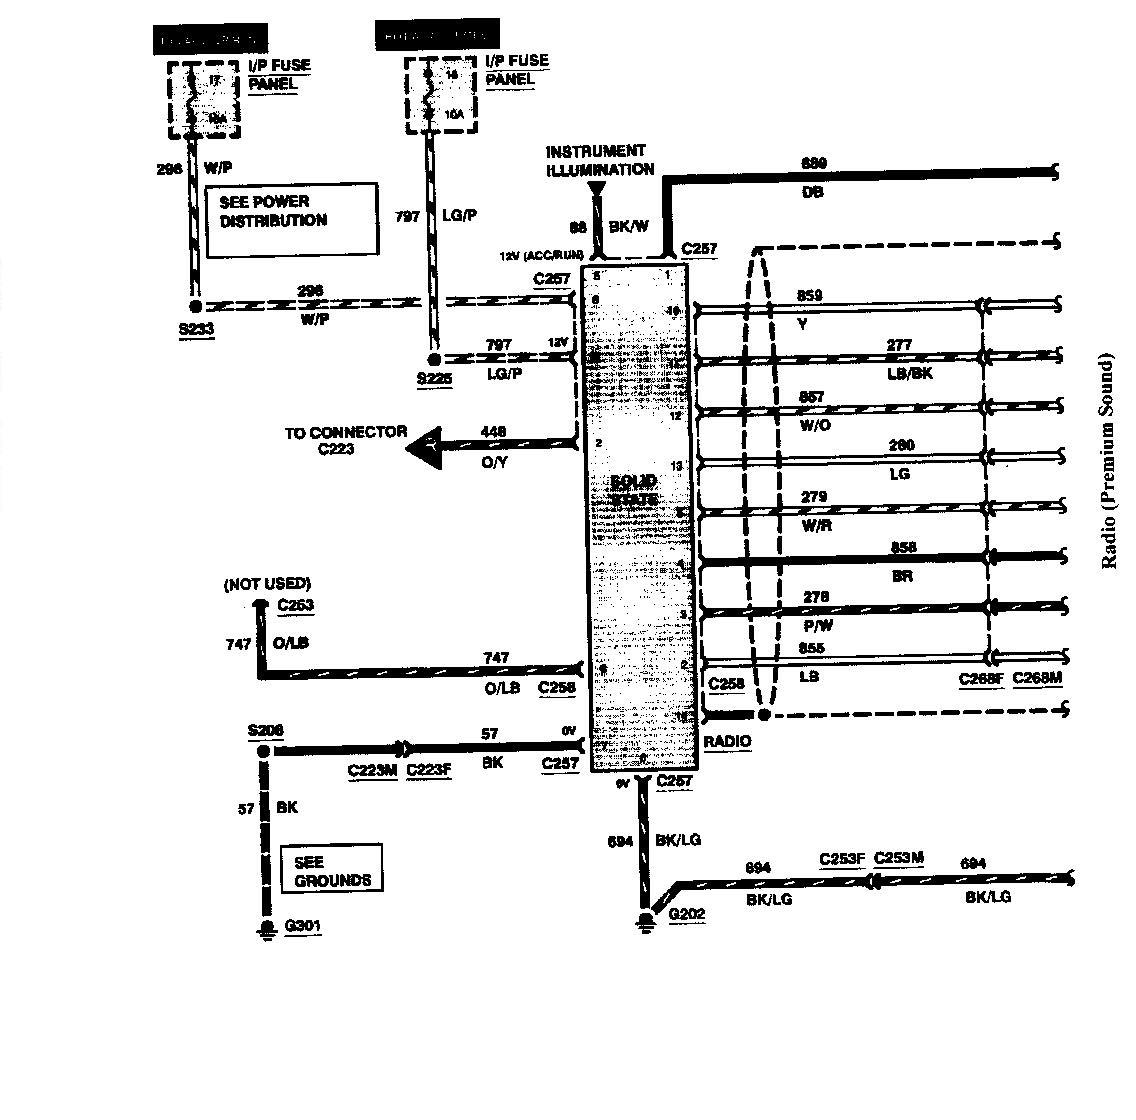 95Mark8 Premium Sound Wiring 95 mark 8 jbl wiring diagram needed lincolns online message forum 2000 lincoln town car radio wiring diagram at edmiracle.co